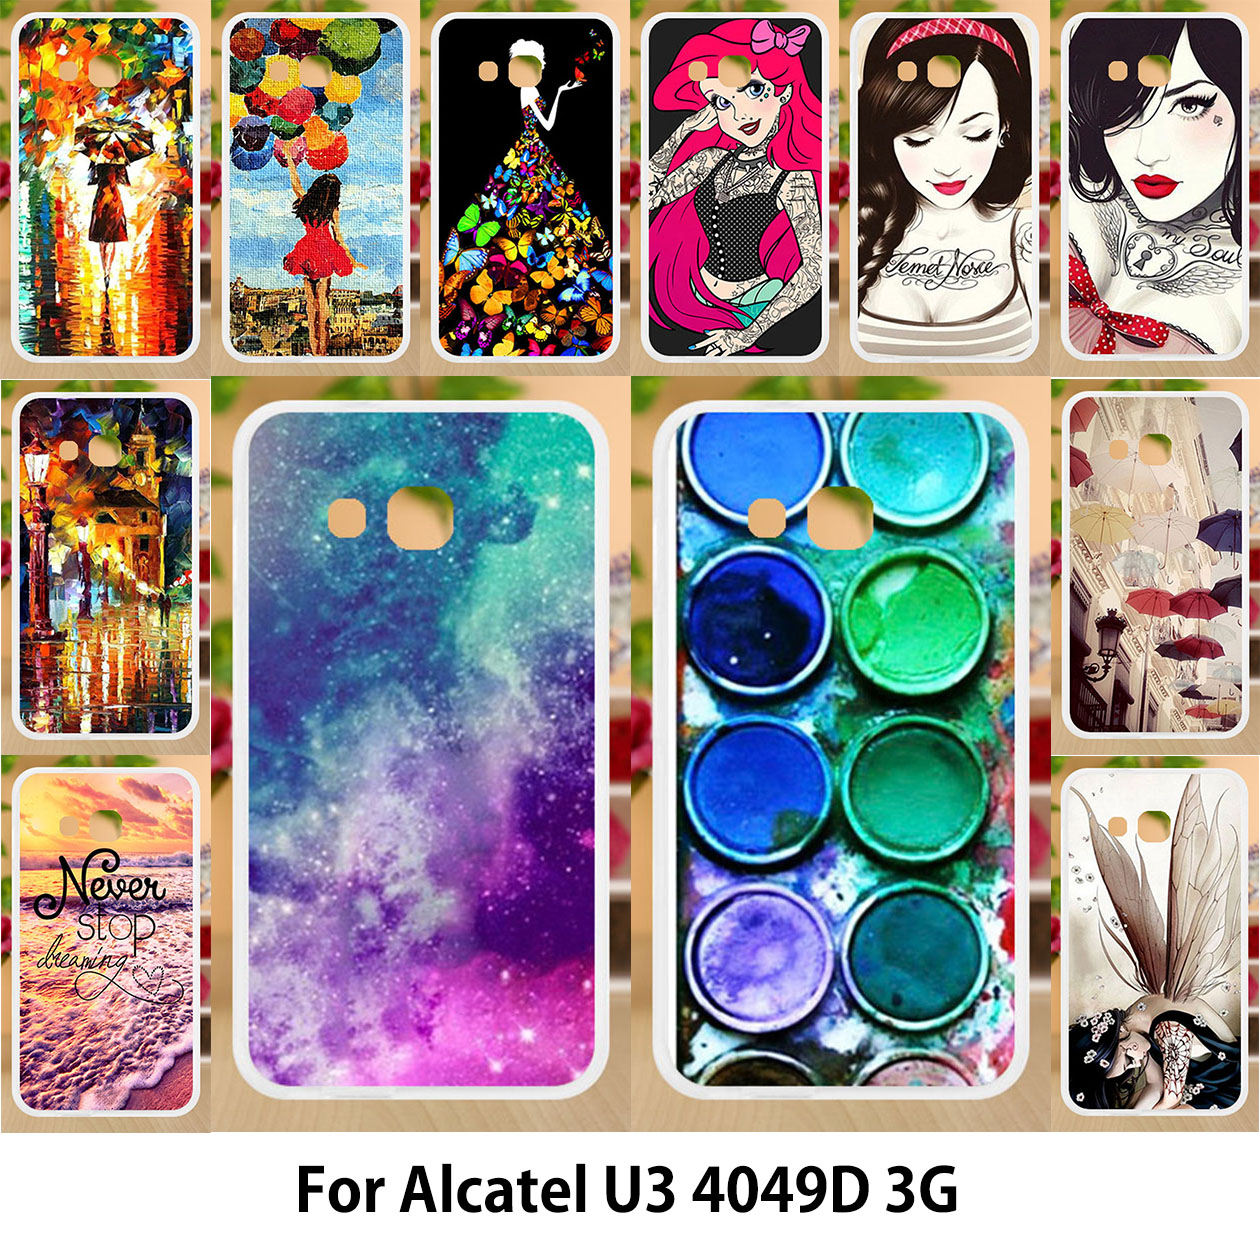 promo code 382ed b9d5a Negozio di sconti online,Alcatel U3 Phone Case Girls